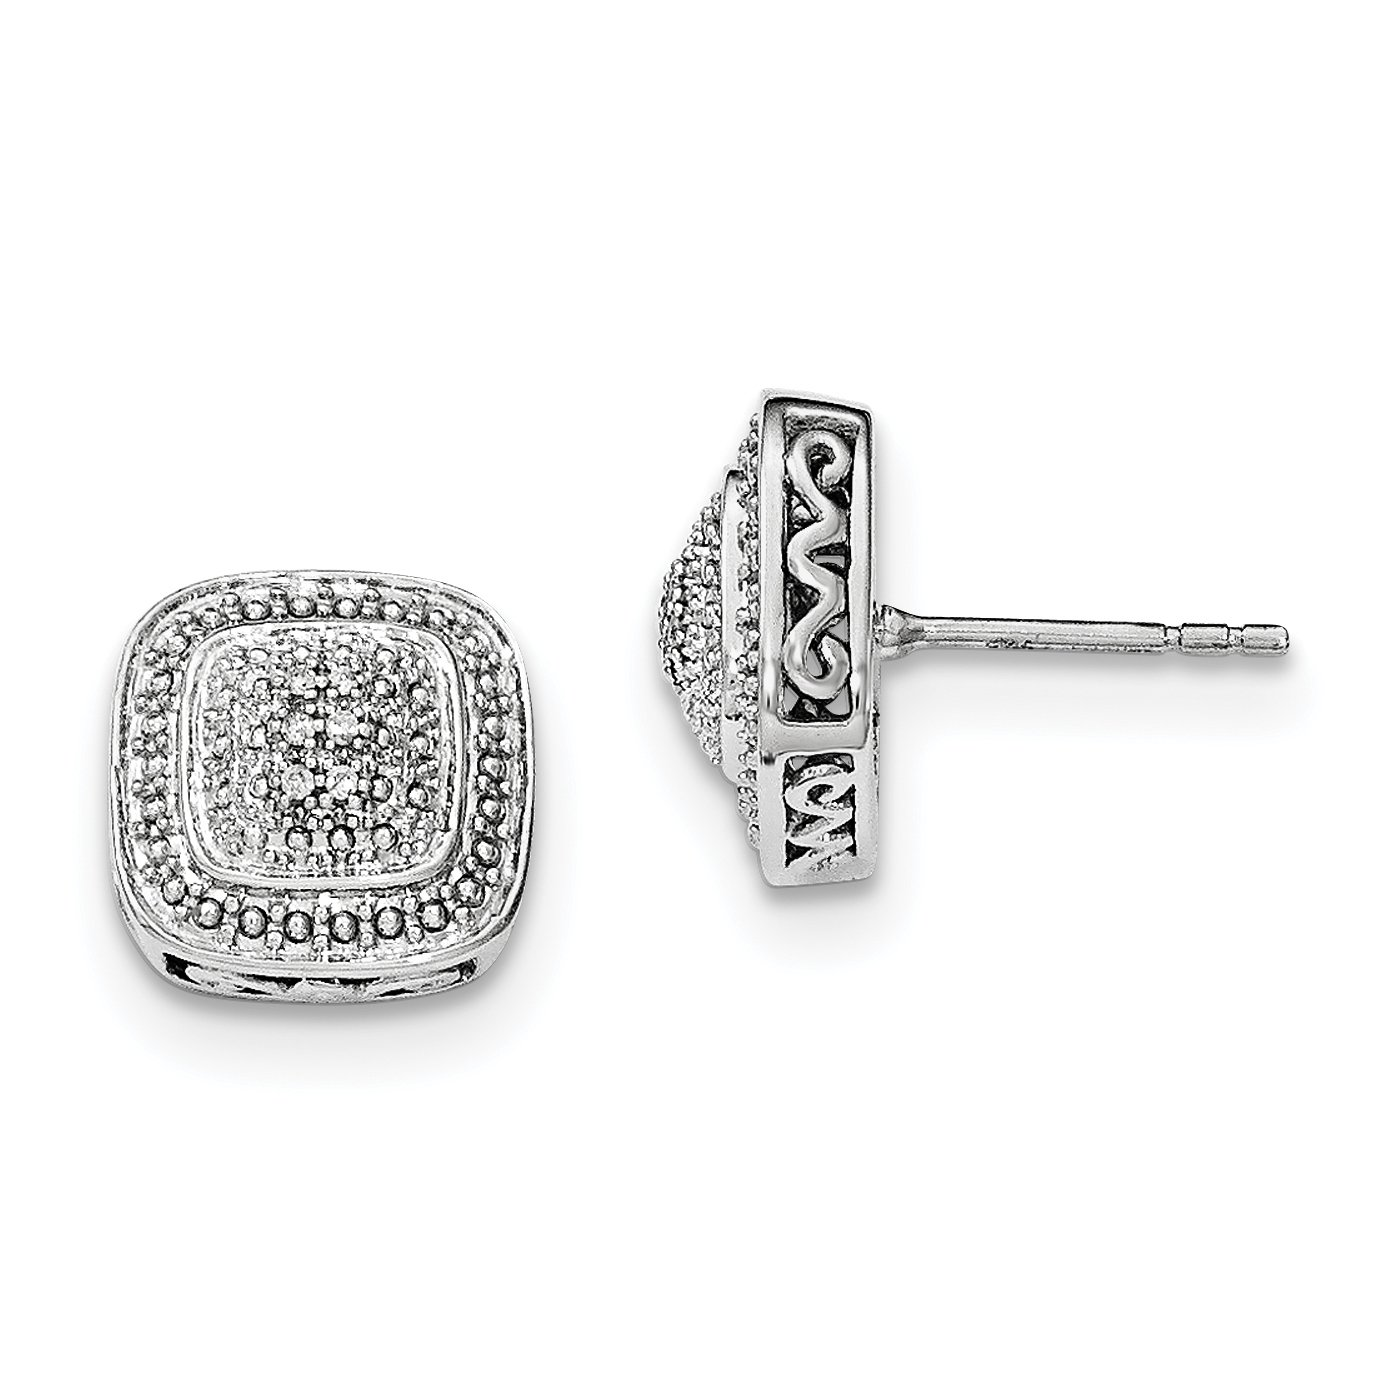 ICE CARATS 925 Sterling Silver Square Shape Diamond Post Stud Ball Button Earrings